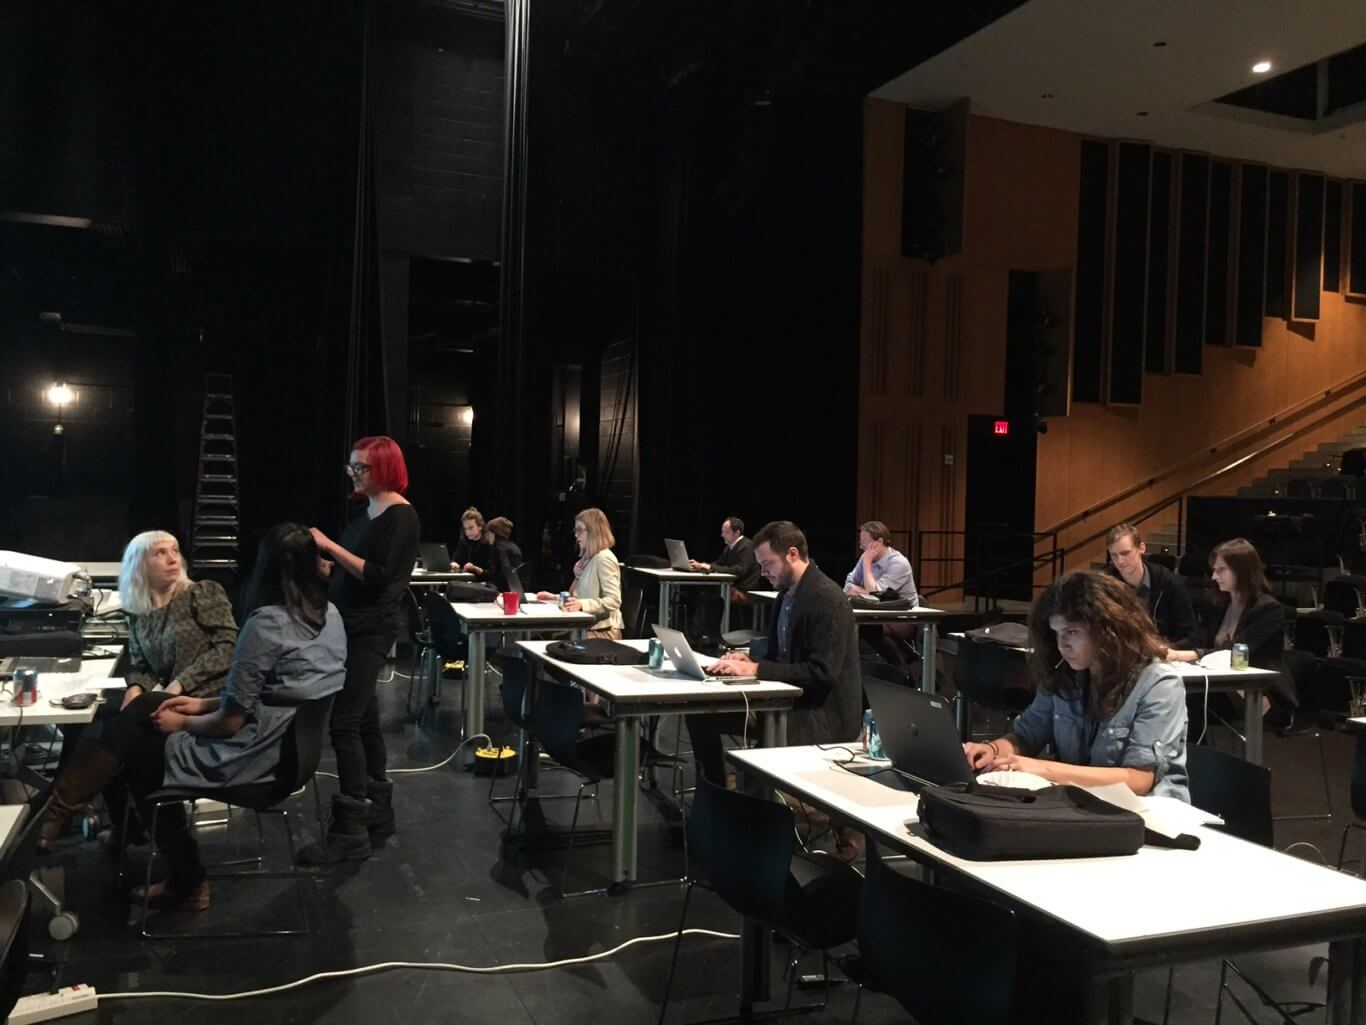 In a dramatically lit space, people sit at three rows of tables that are covered in laptops; some people are working in groups. In the first row, two women turn to a red-headed woman standing, engaging them in conversation.